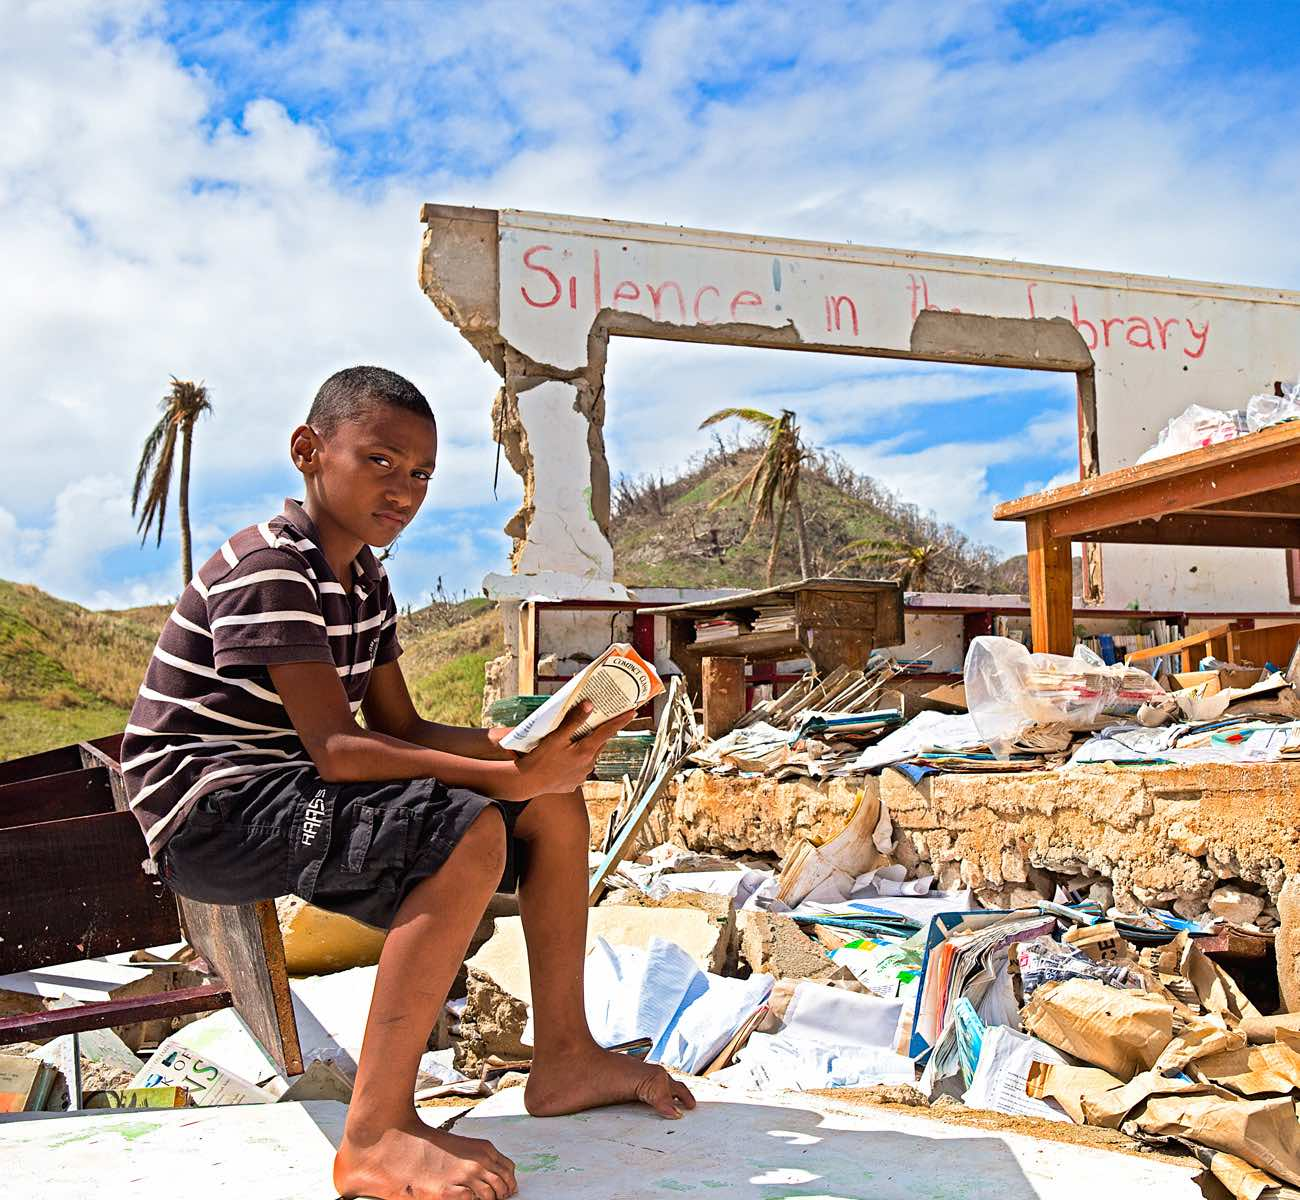 Amid the rubble of a collapsed library, a boy from Vanuatu sits in one of the library's exposed chairs and reads a book from its sun-drenched shelves.